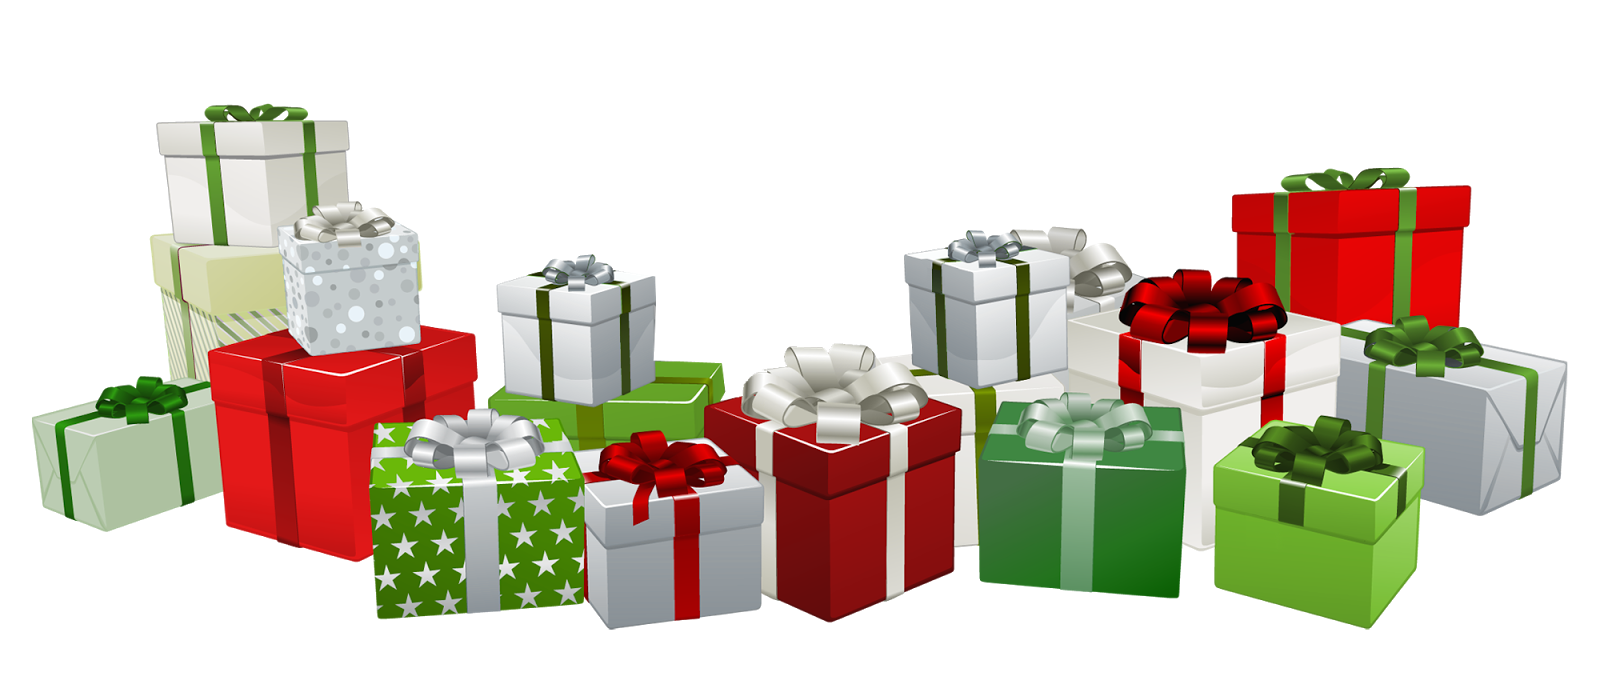 Christmas present clipart png jpg freeuse stock Free PNG Images Download: Download Free Christmas Gifts PNG Images jpg freeuse stock